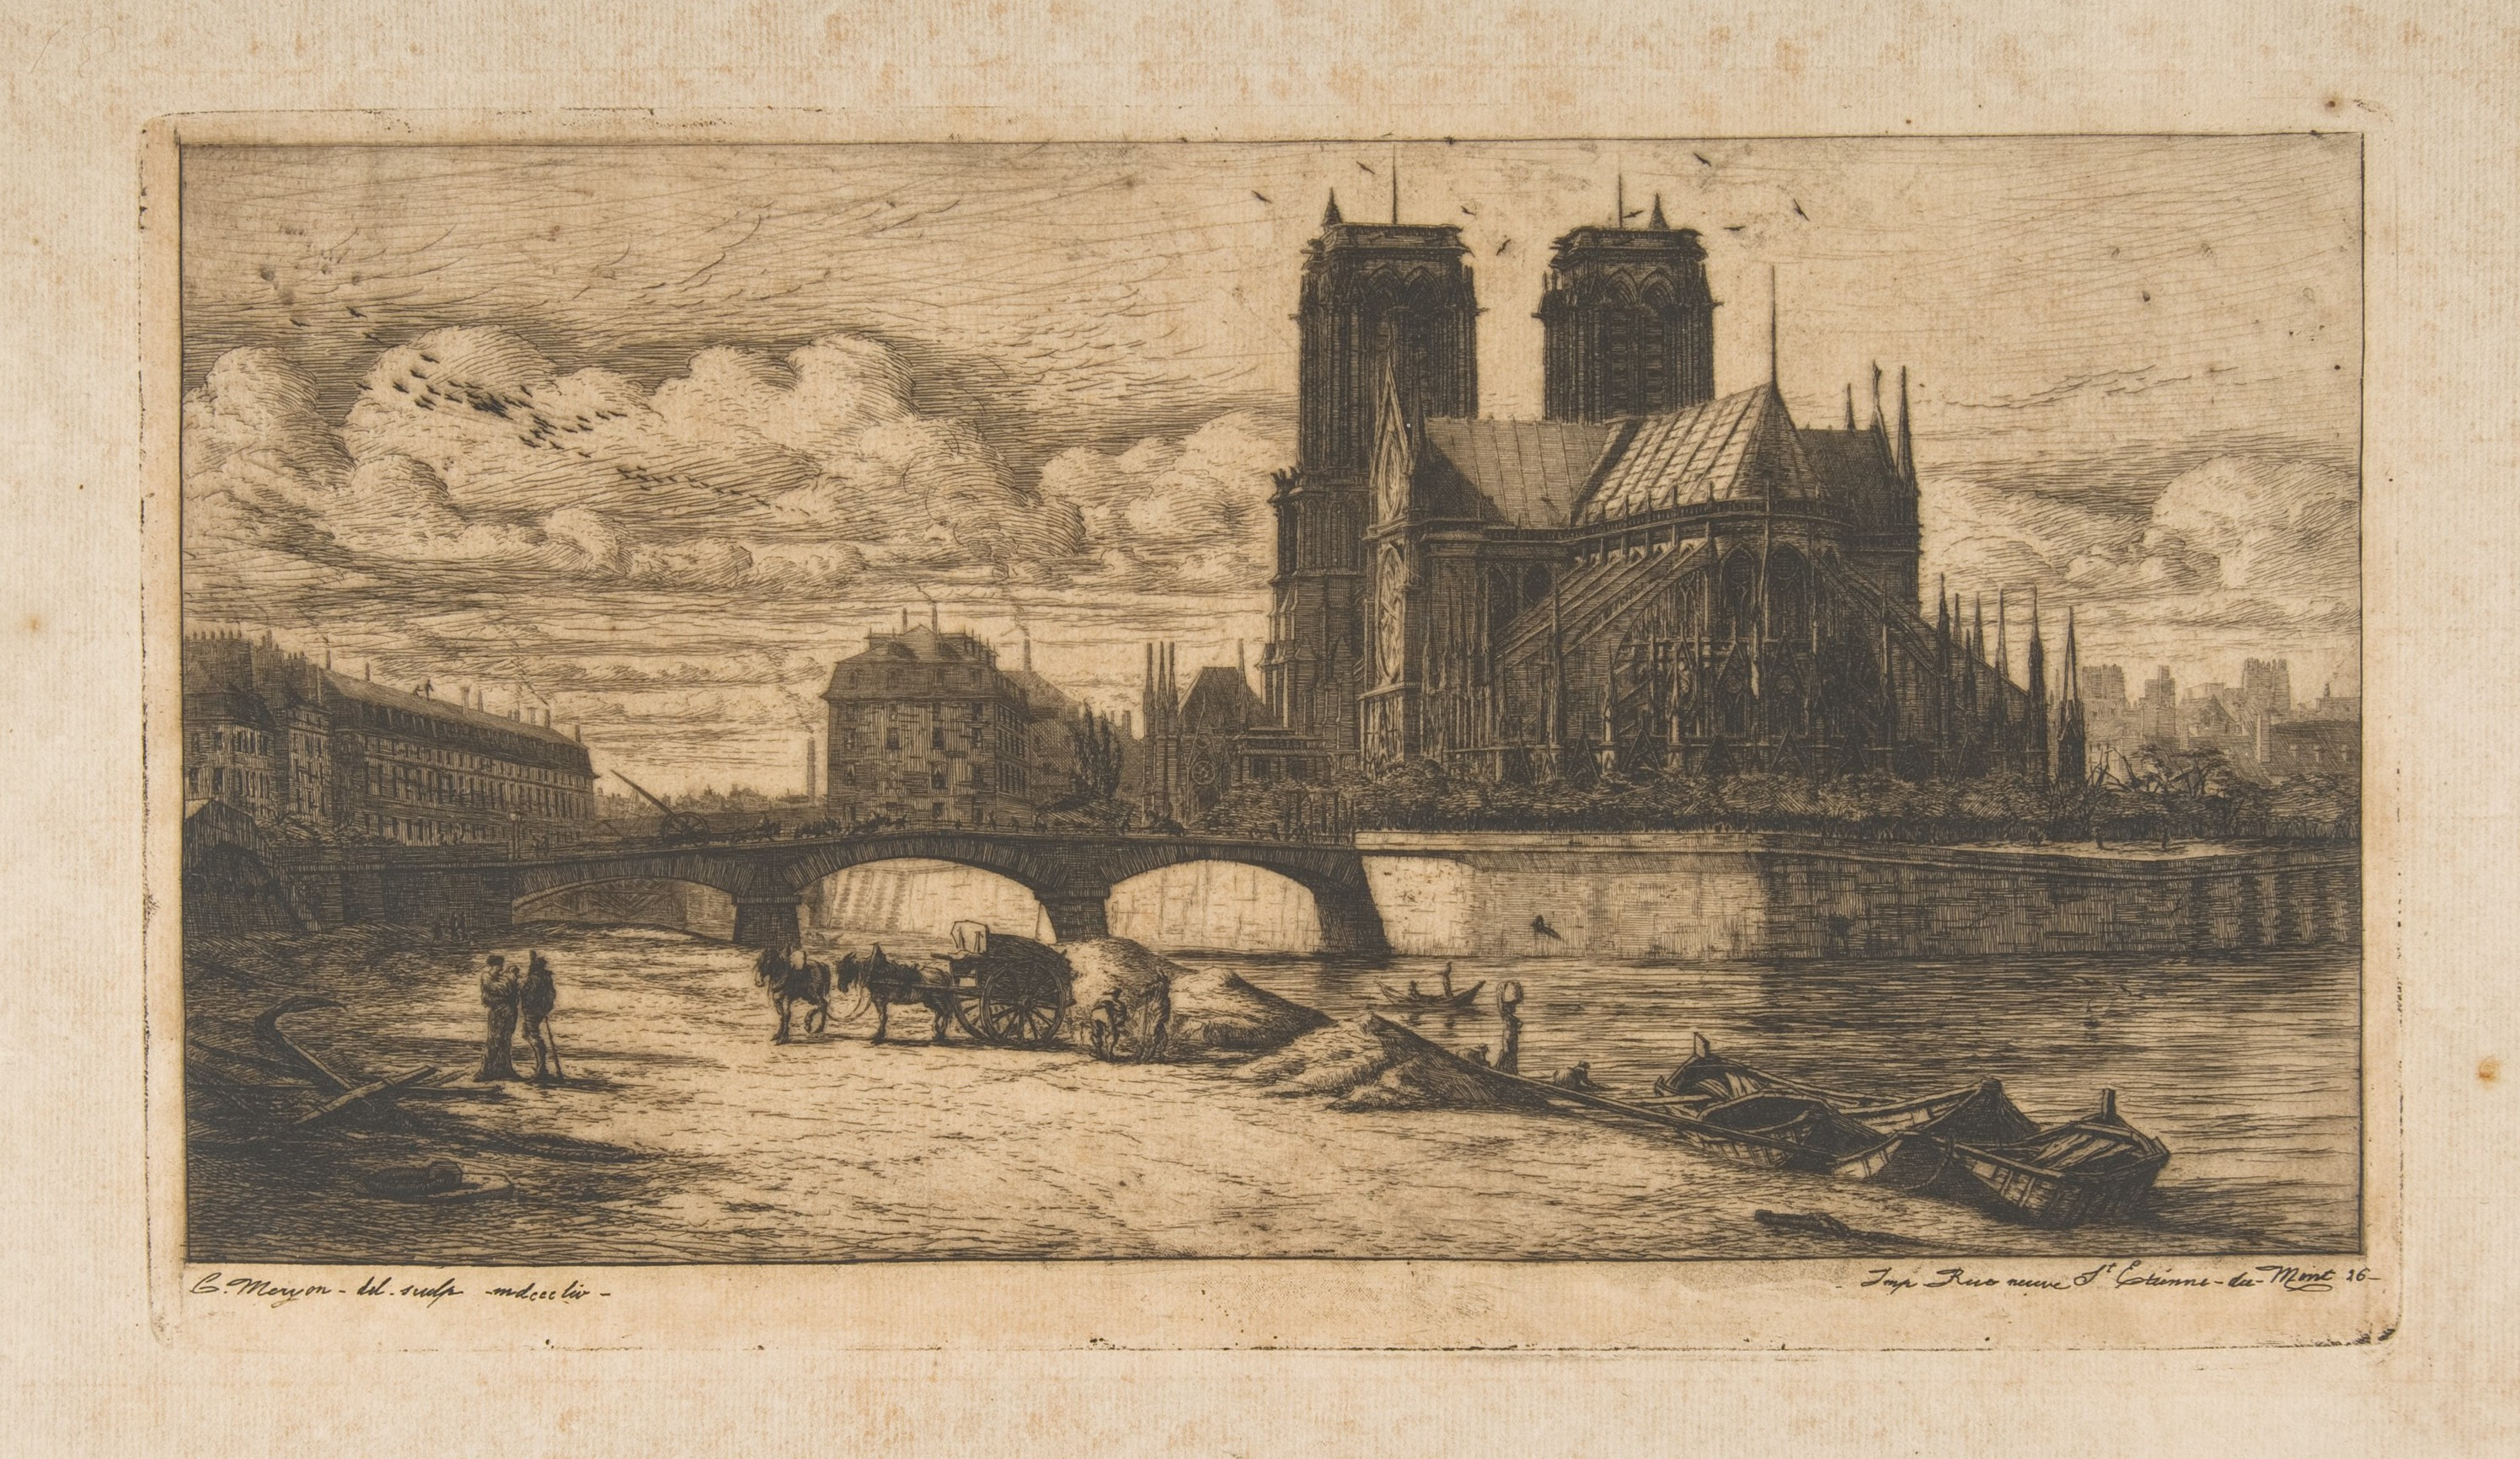 File:Charles Meryon, The Apse of Notre-Dame, Paris, 1854.